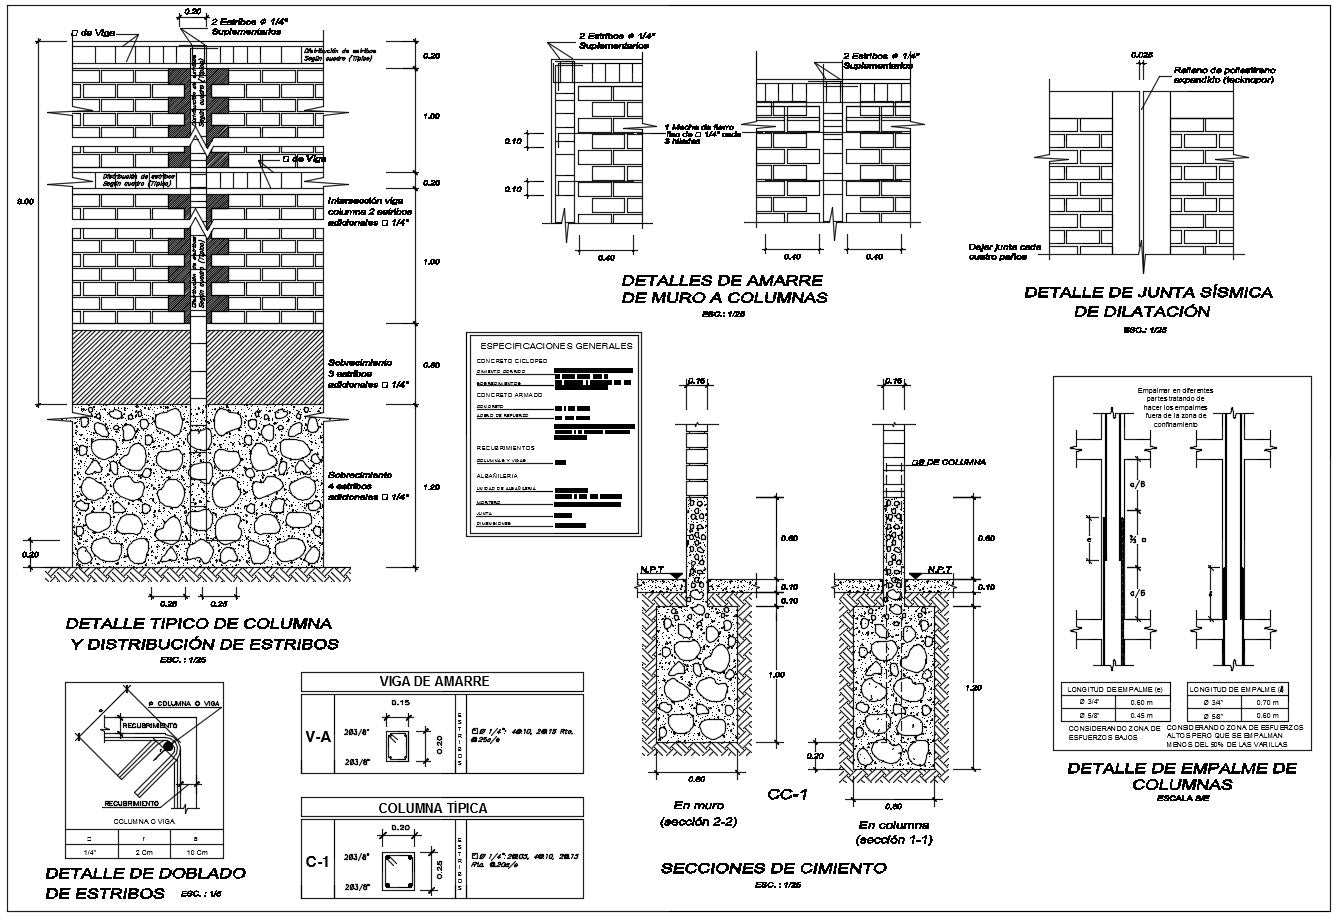 Perimeter wall section design drawing with all section and detailing in this auto cad file.